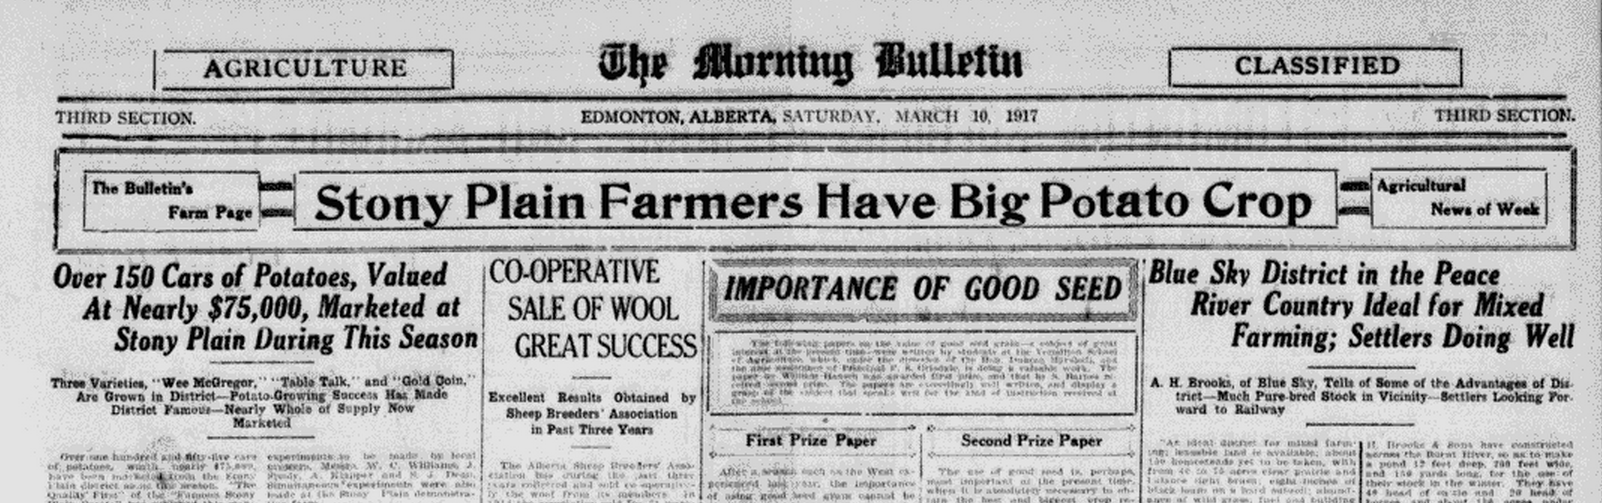 The Edmonton Bulletin on Saturday  March 10 1917 Blue Sky District in the Peace River Country Ideal for Mixed Farming per A H Brooks